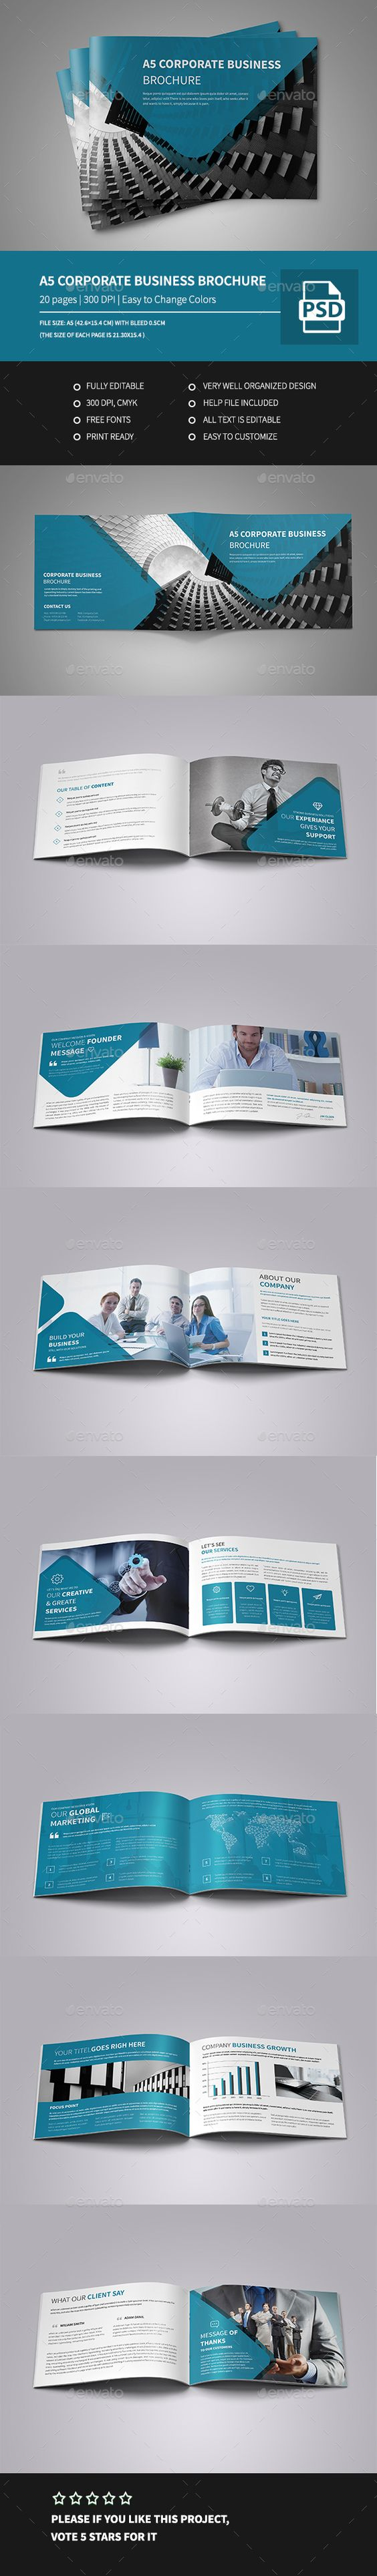 a5 landscape brochure template - pinterest the world s catalog of ideas